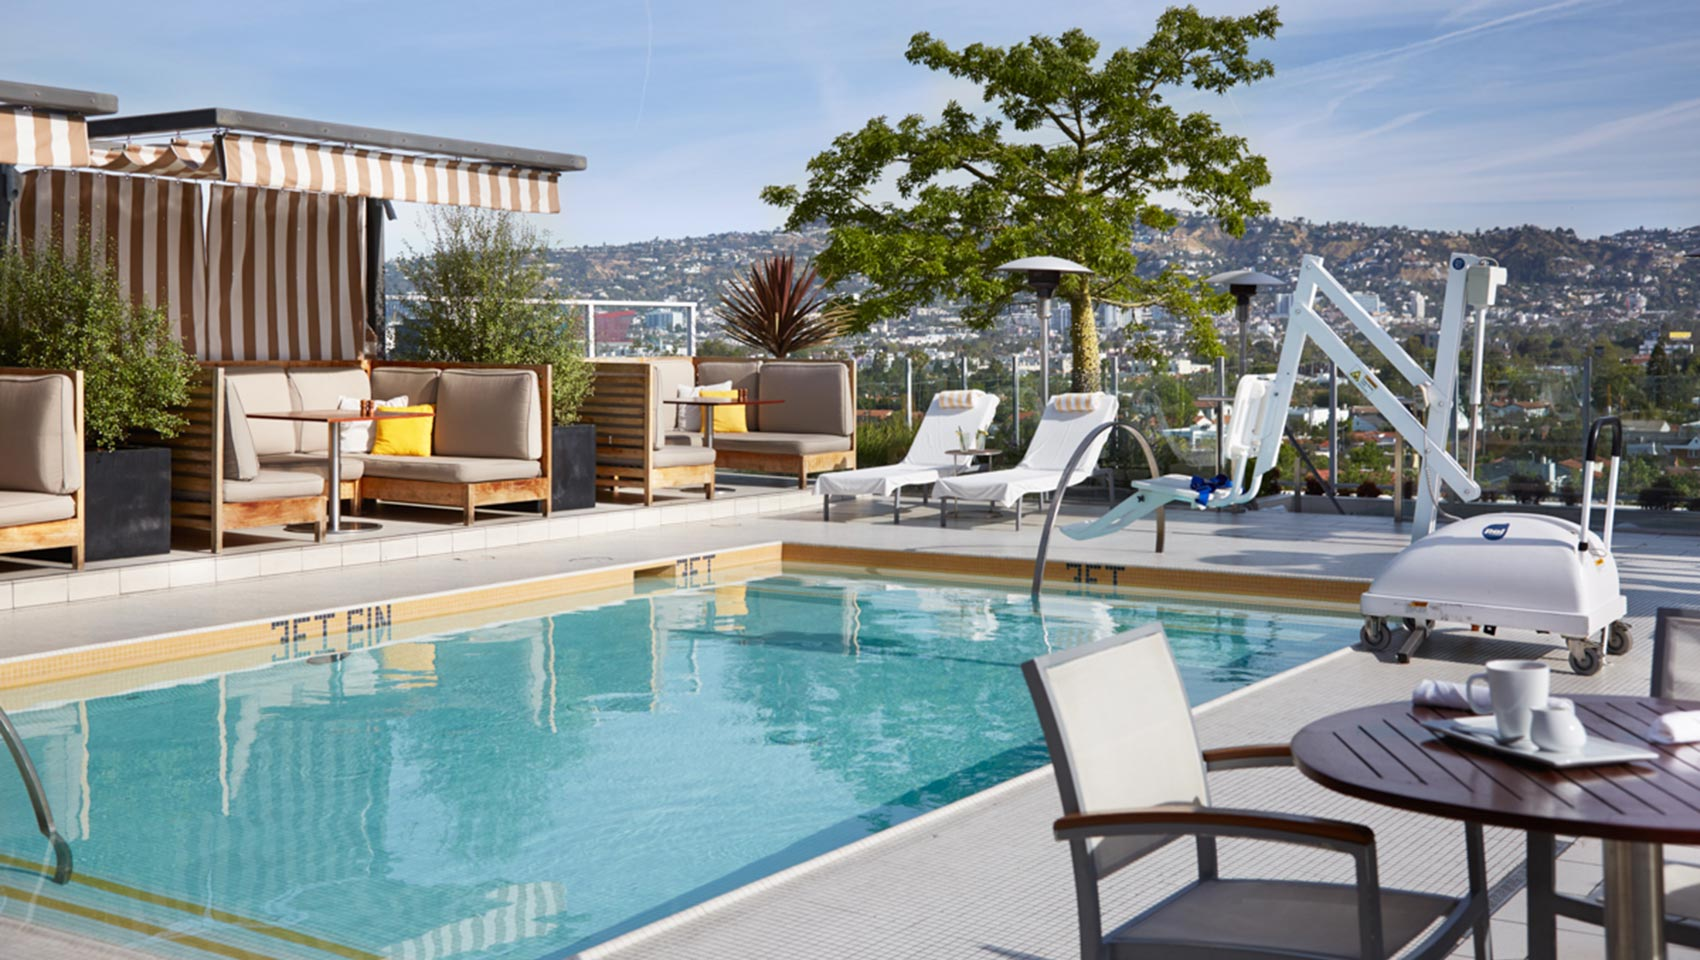 Kimpton Hotel Wilshire accessible hotel pool